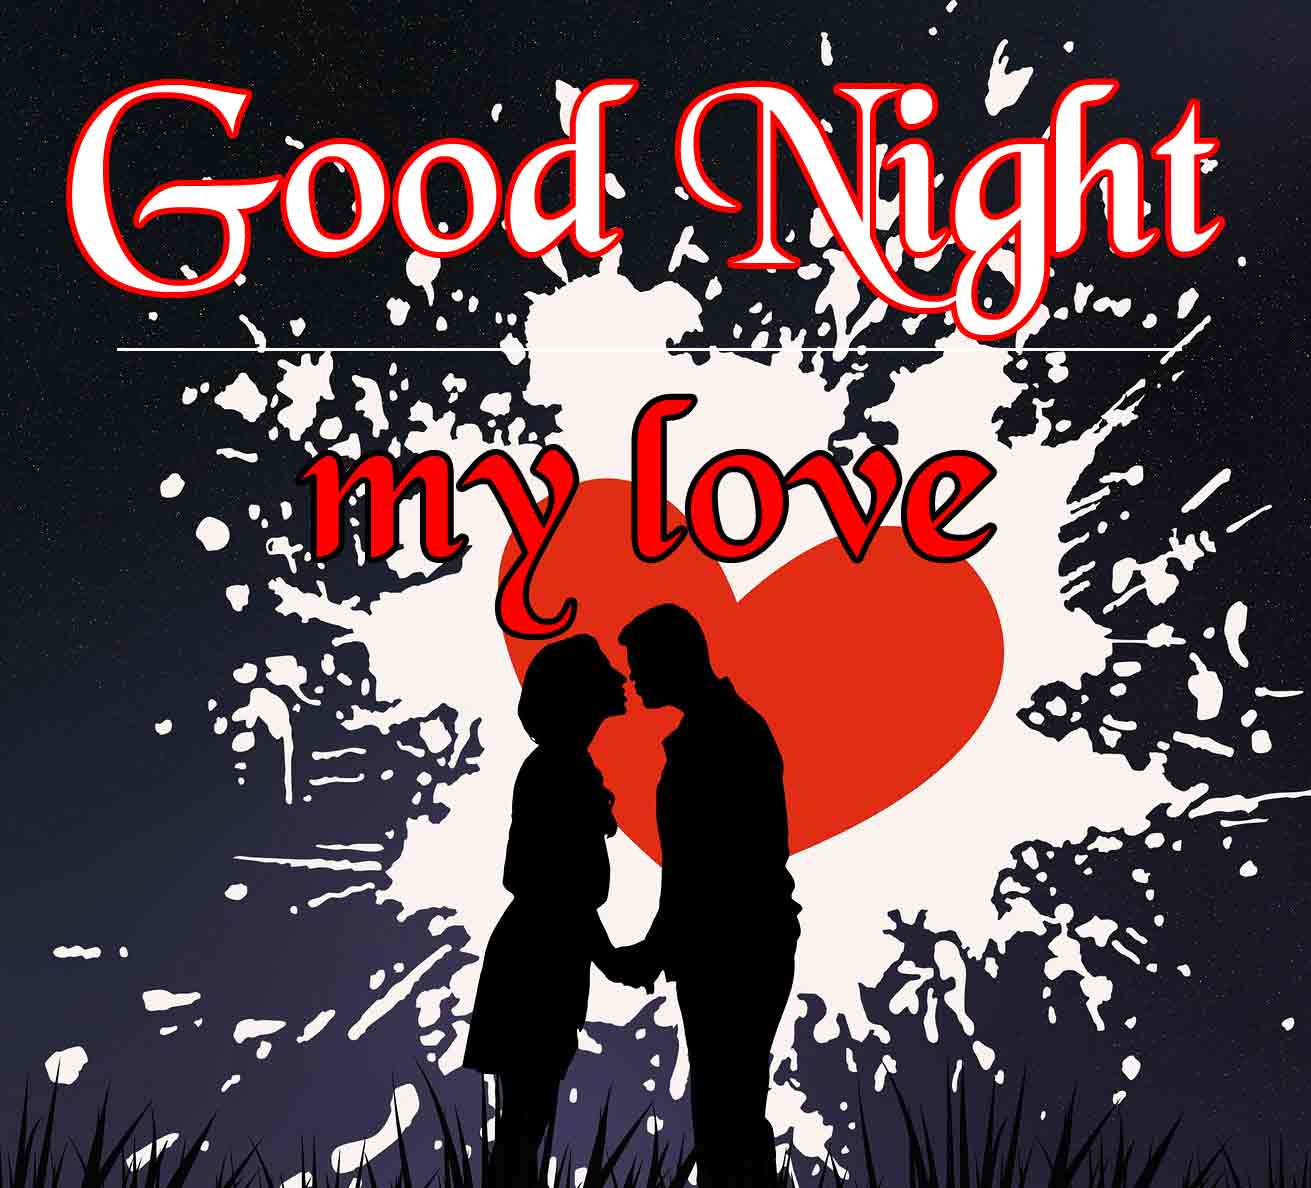 Couple Free Good Night Wallpaper Images Download